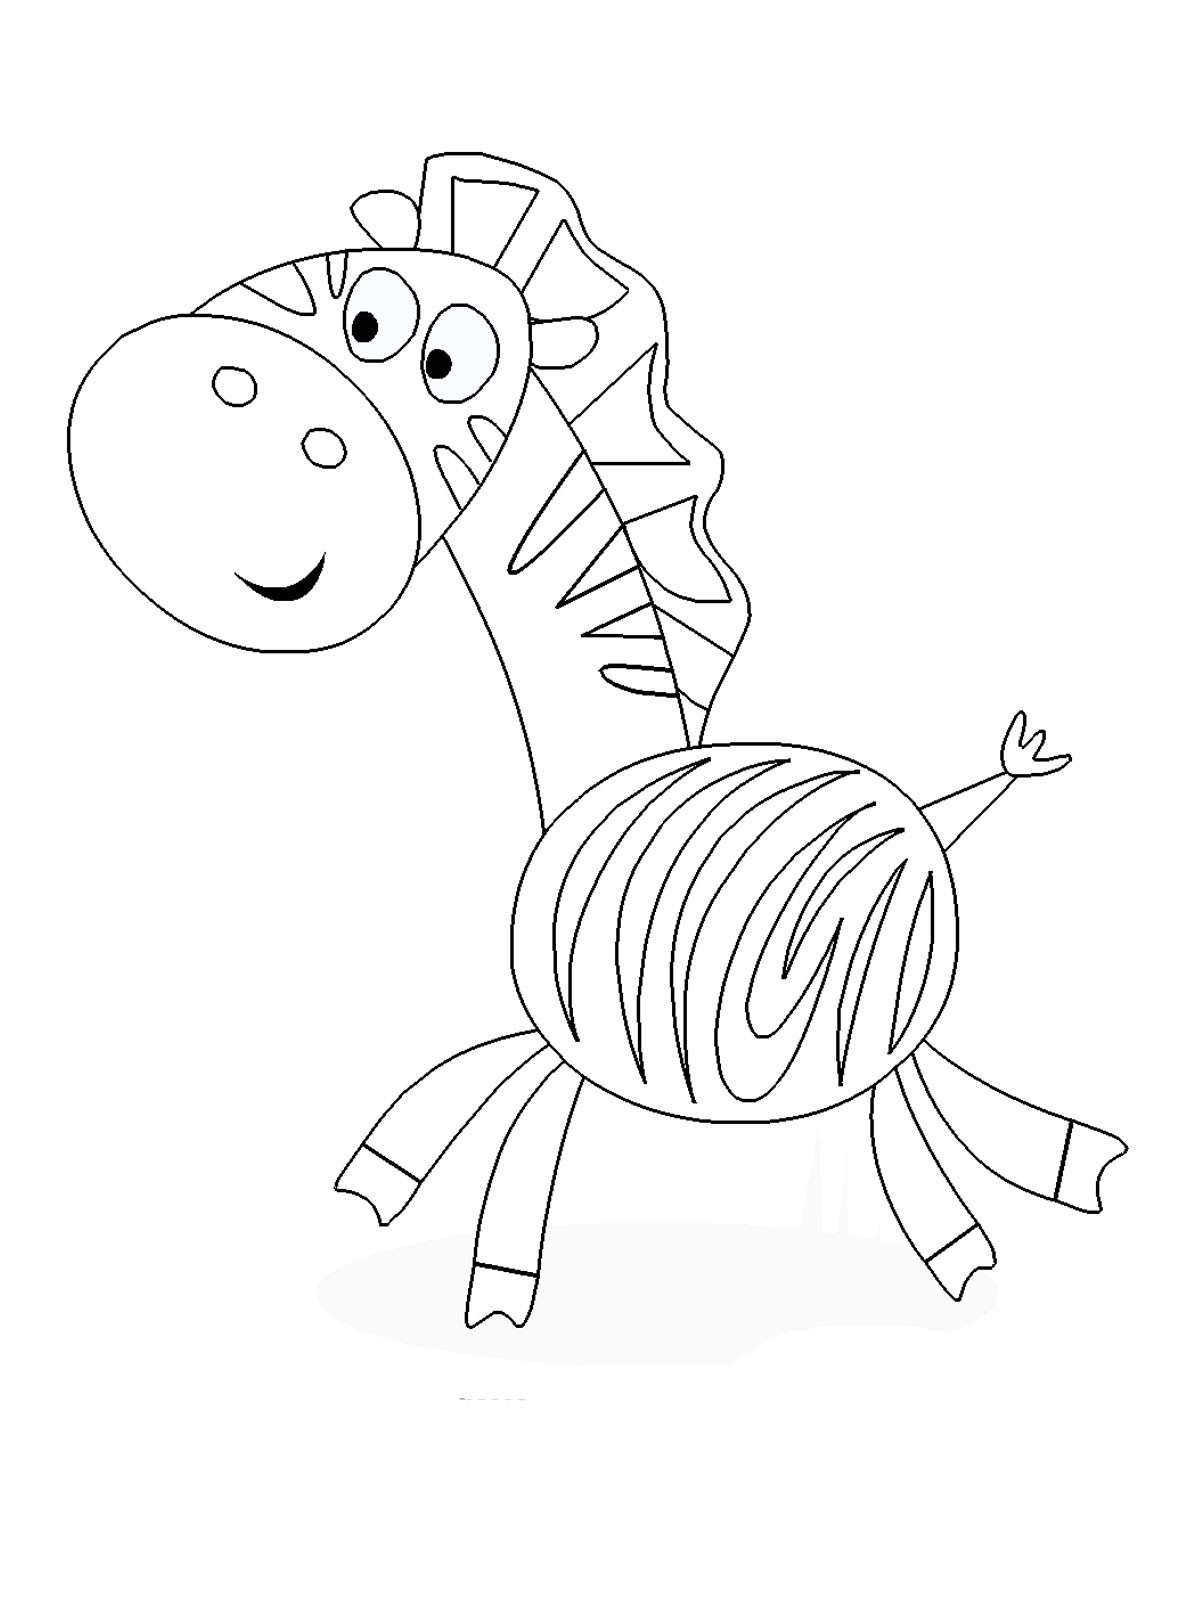 Printable Coloring Pages Kids  Printable coloring pages for kids